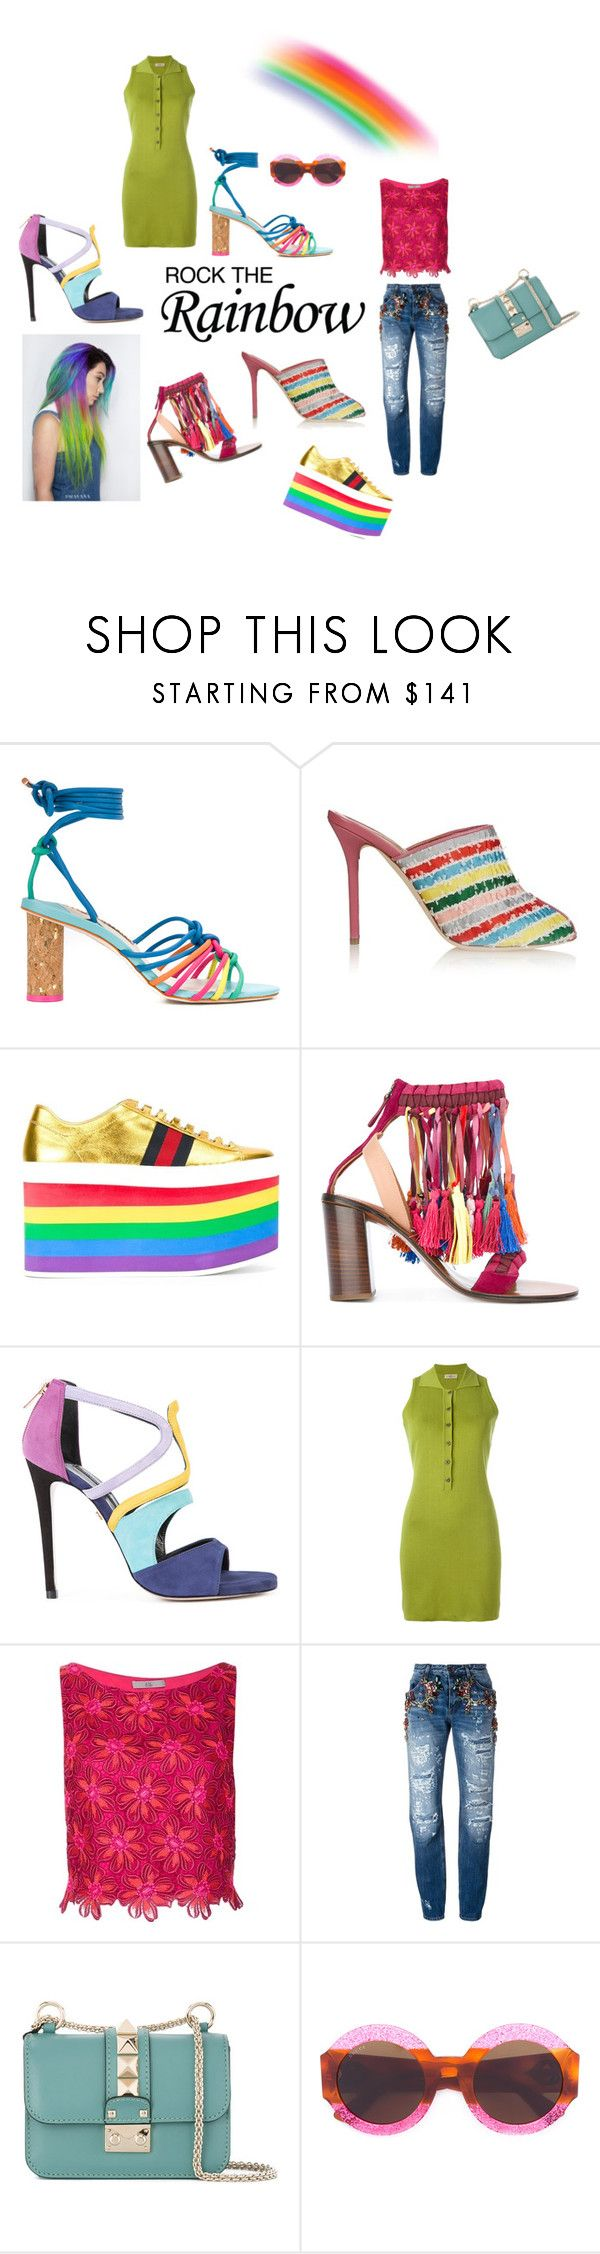 """""""Rock The Rainbow..**"""" by yagna ❤ liked on Polyvore featuring Sophia Webster, Malone Souliers, Gucci, Chloé, Ruthie Davis, Romeo Gigli, ZAC Zac Posen, Dolce&Gabbana, Valentino and vintage"""